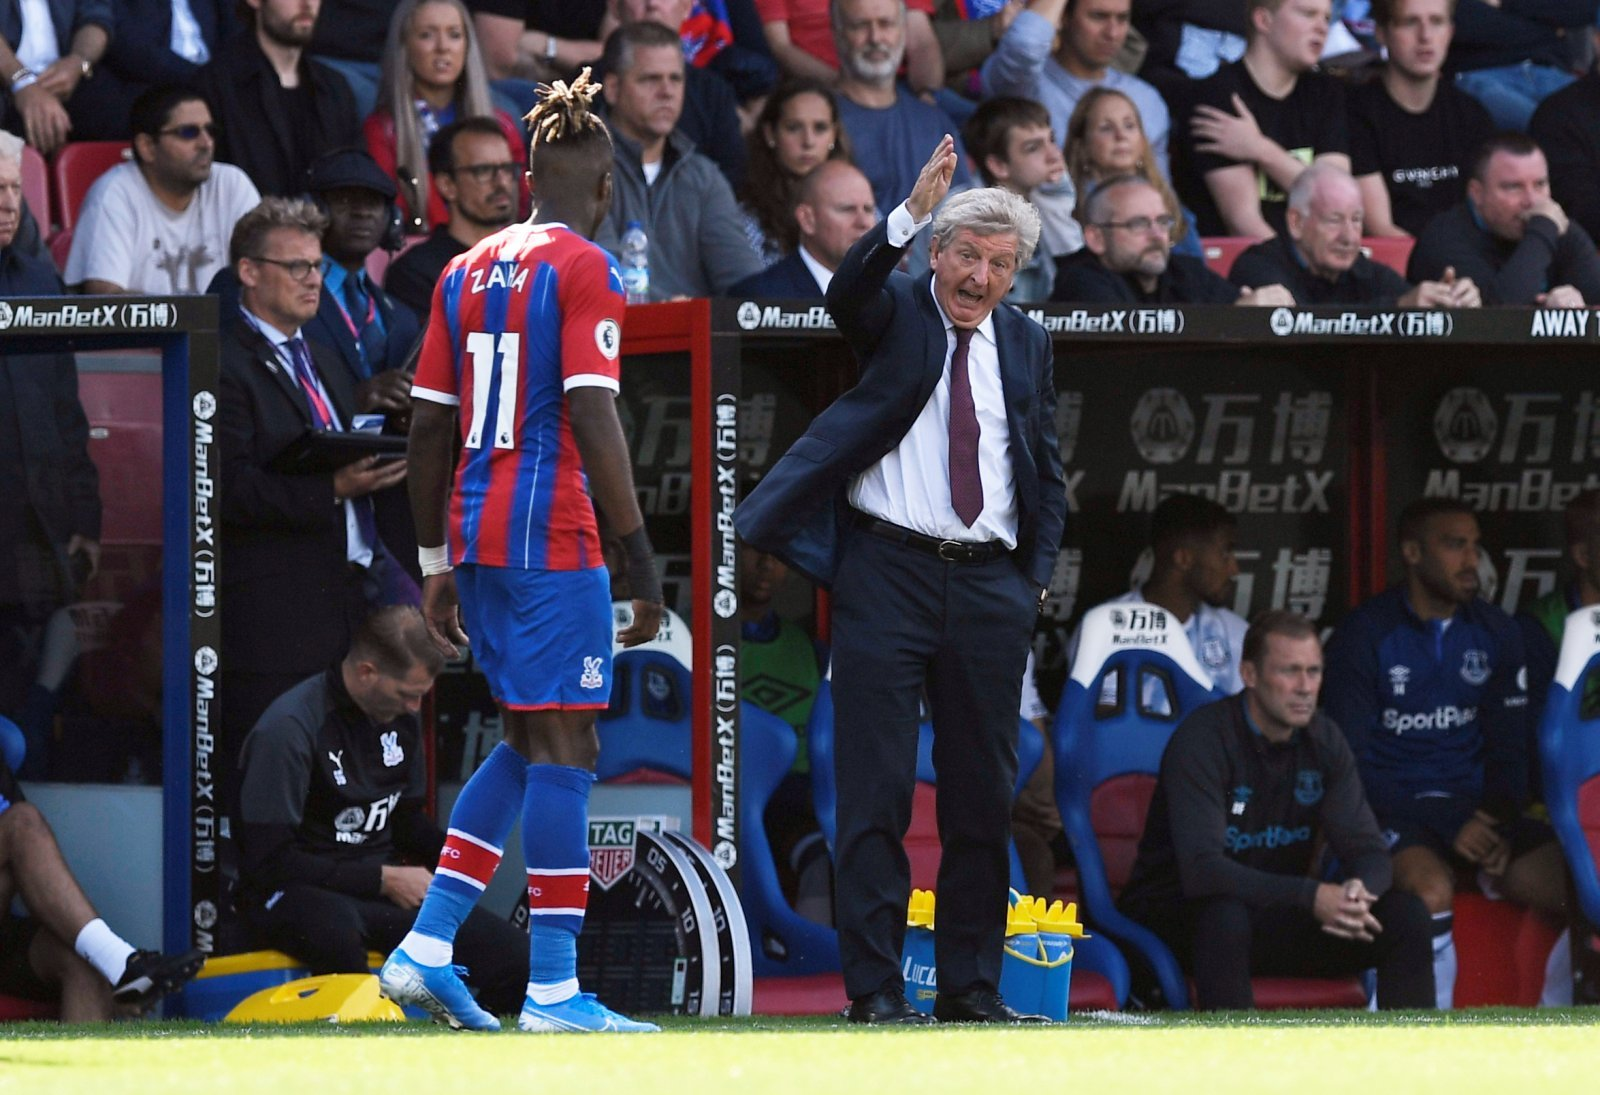 Crystal Palace: Hodgson impressed with Zaha despite continued transfer talk